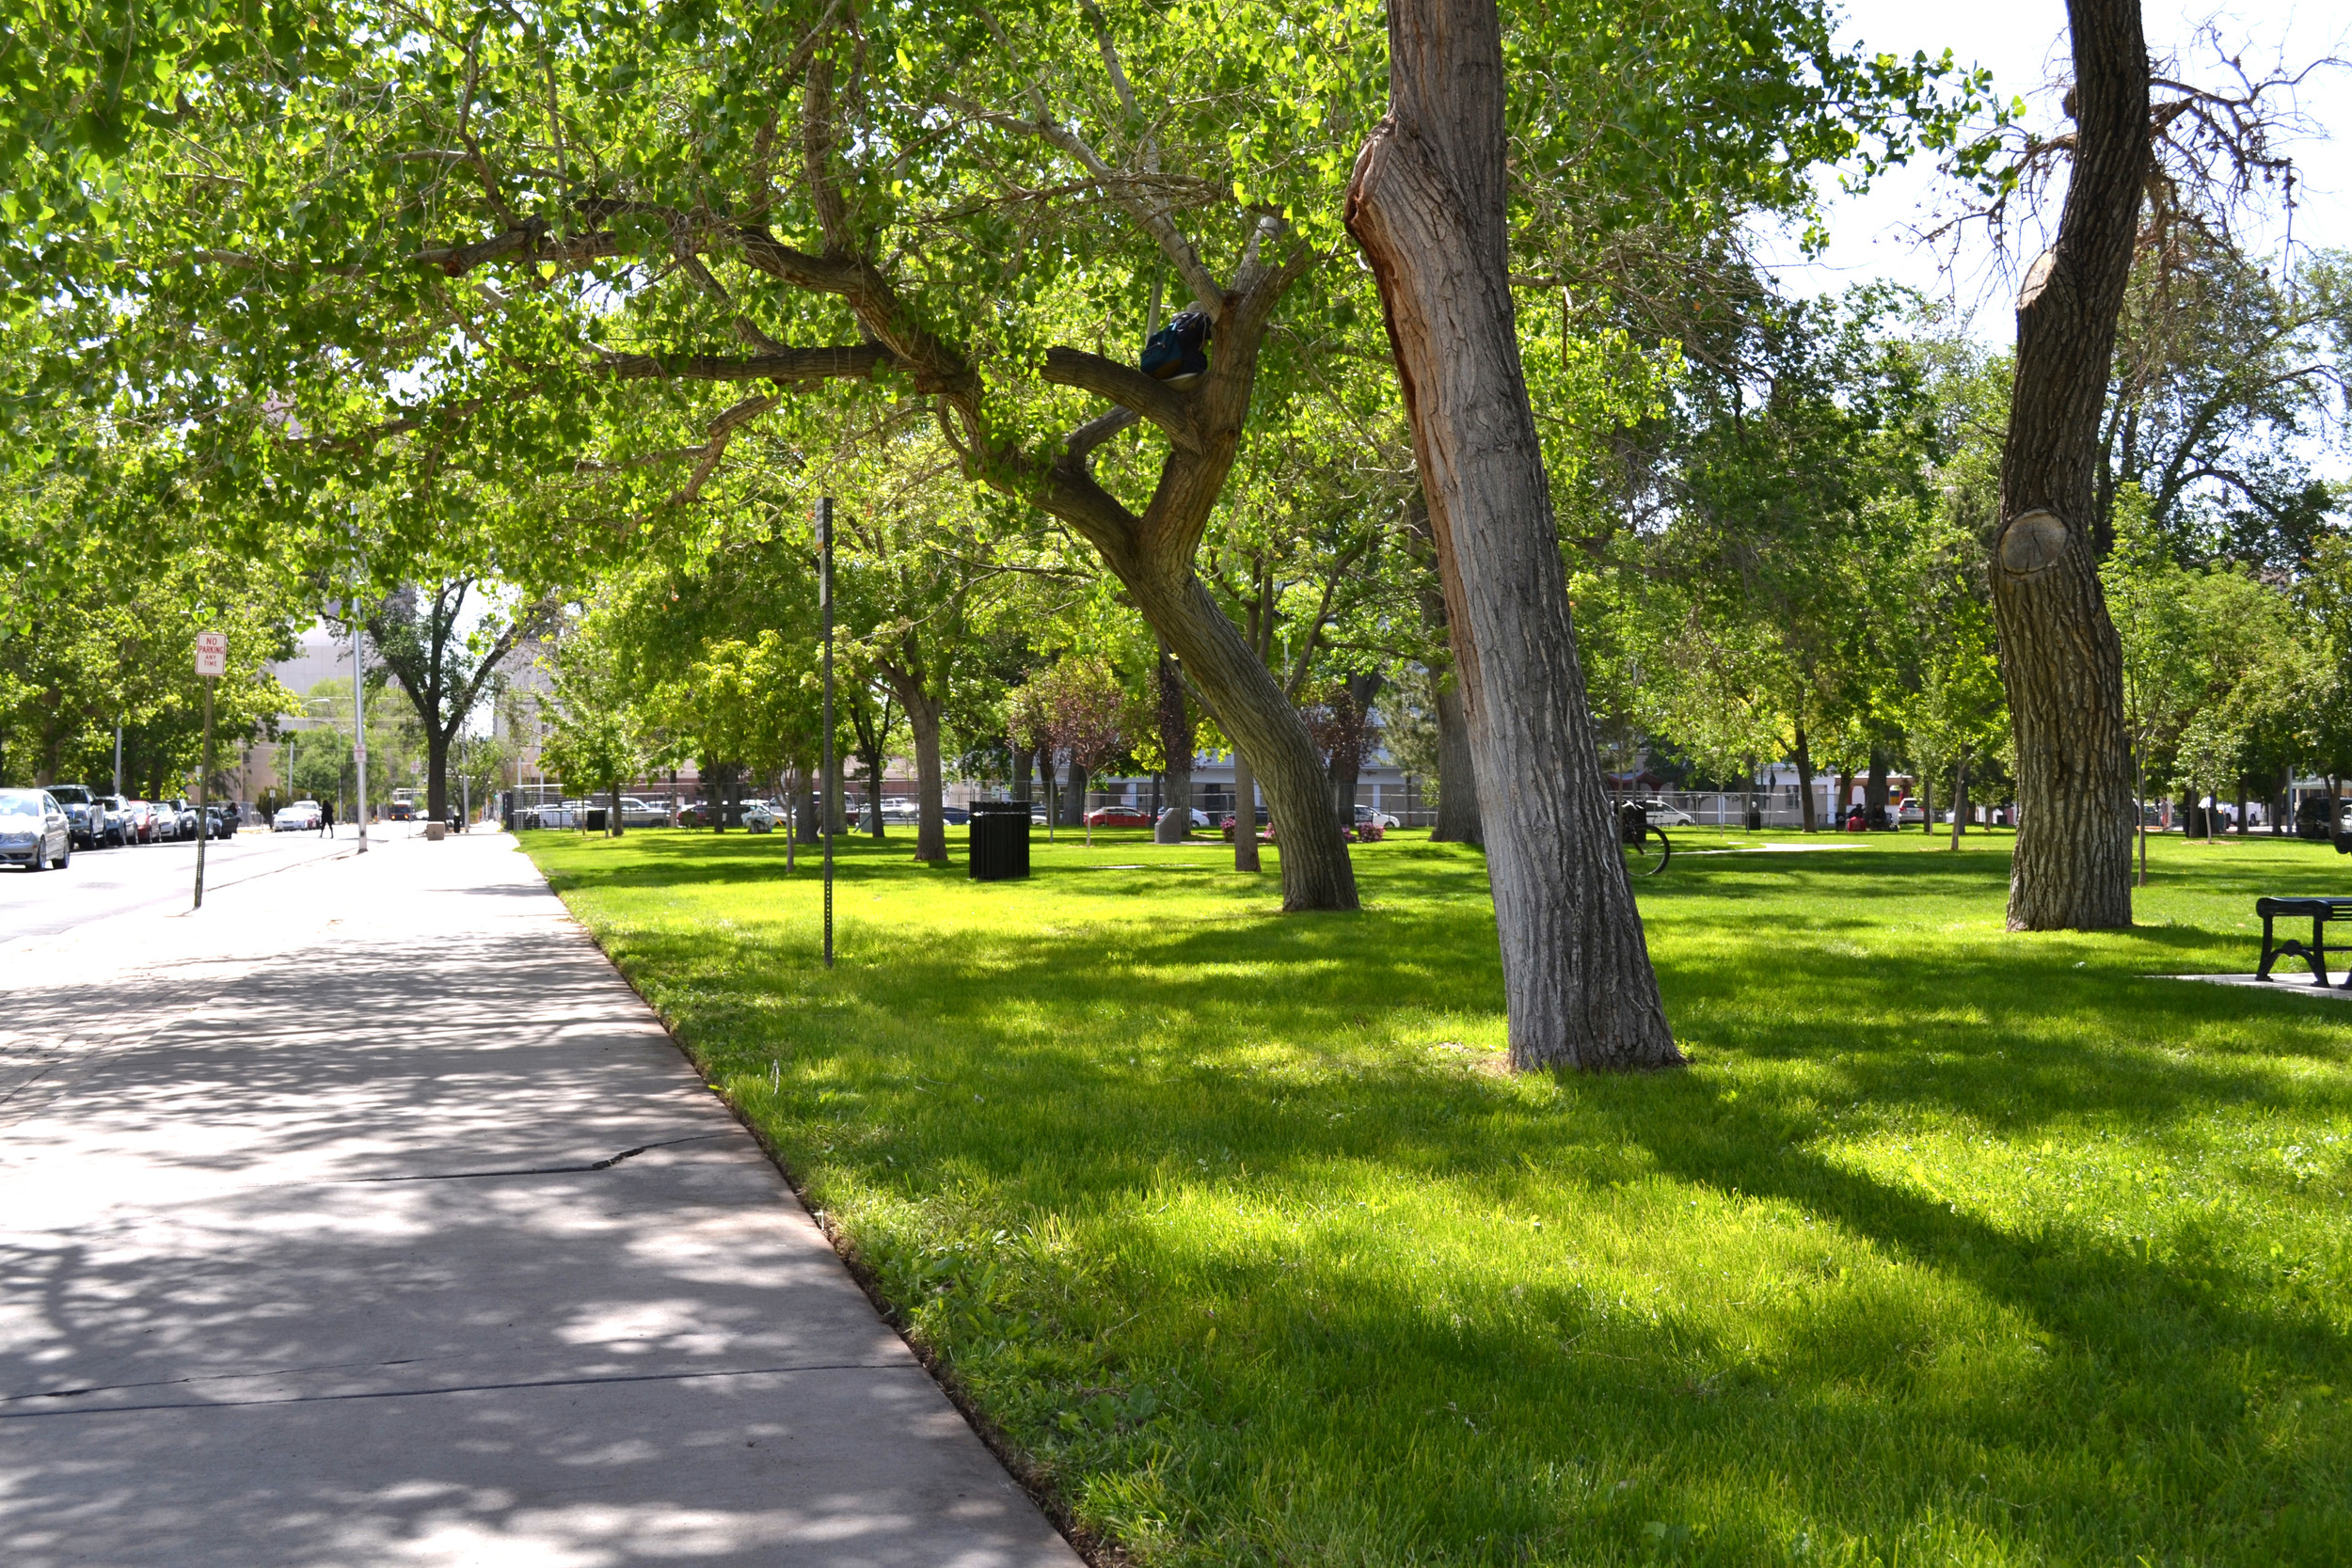 Despite heavy foot traffic, turf now thrives in renovated park